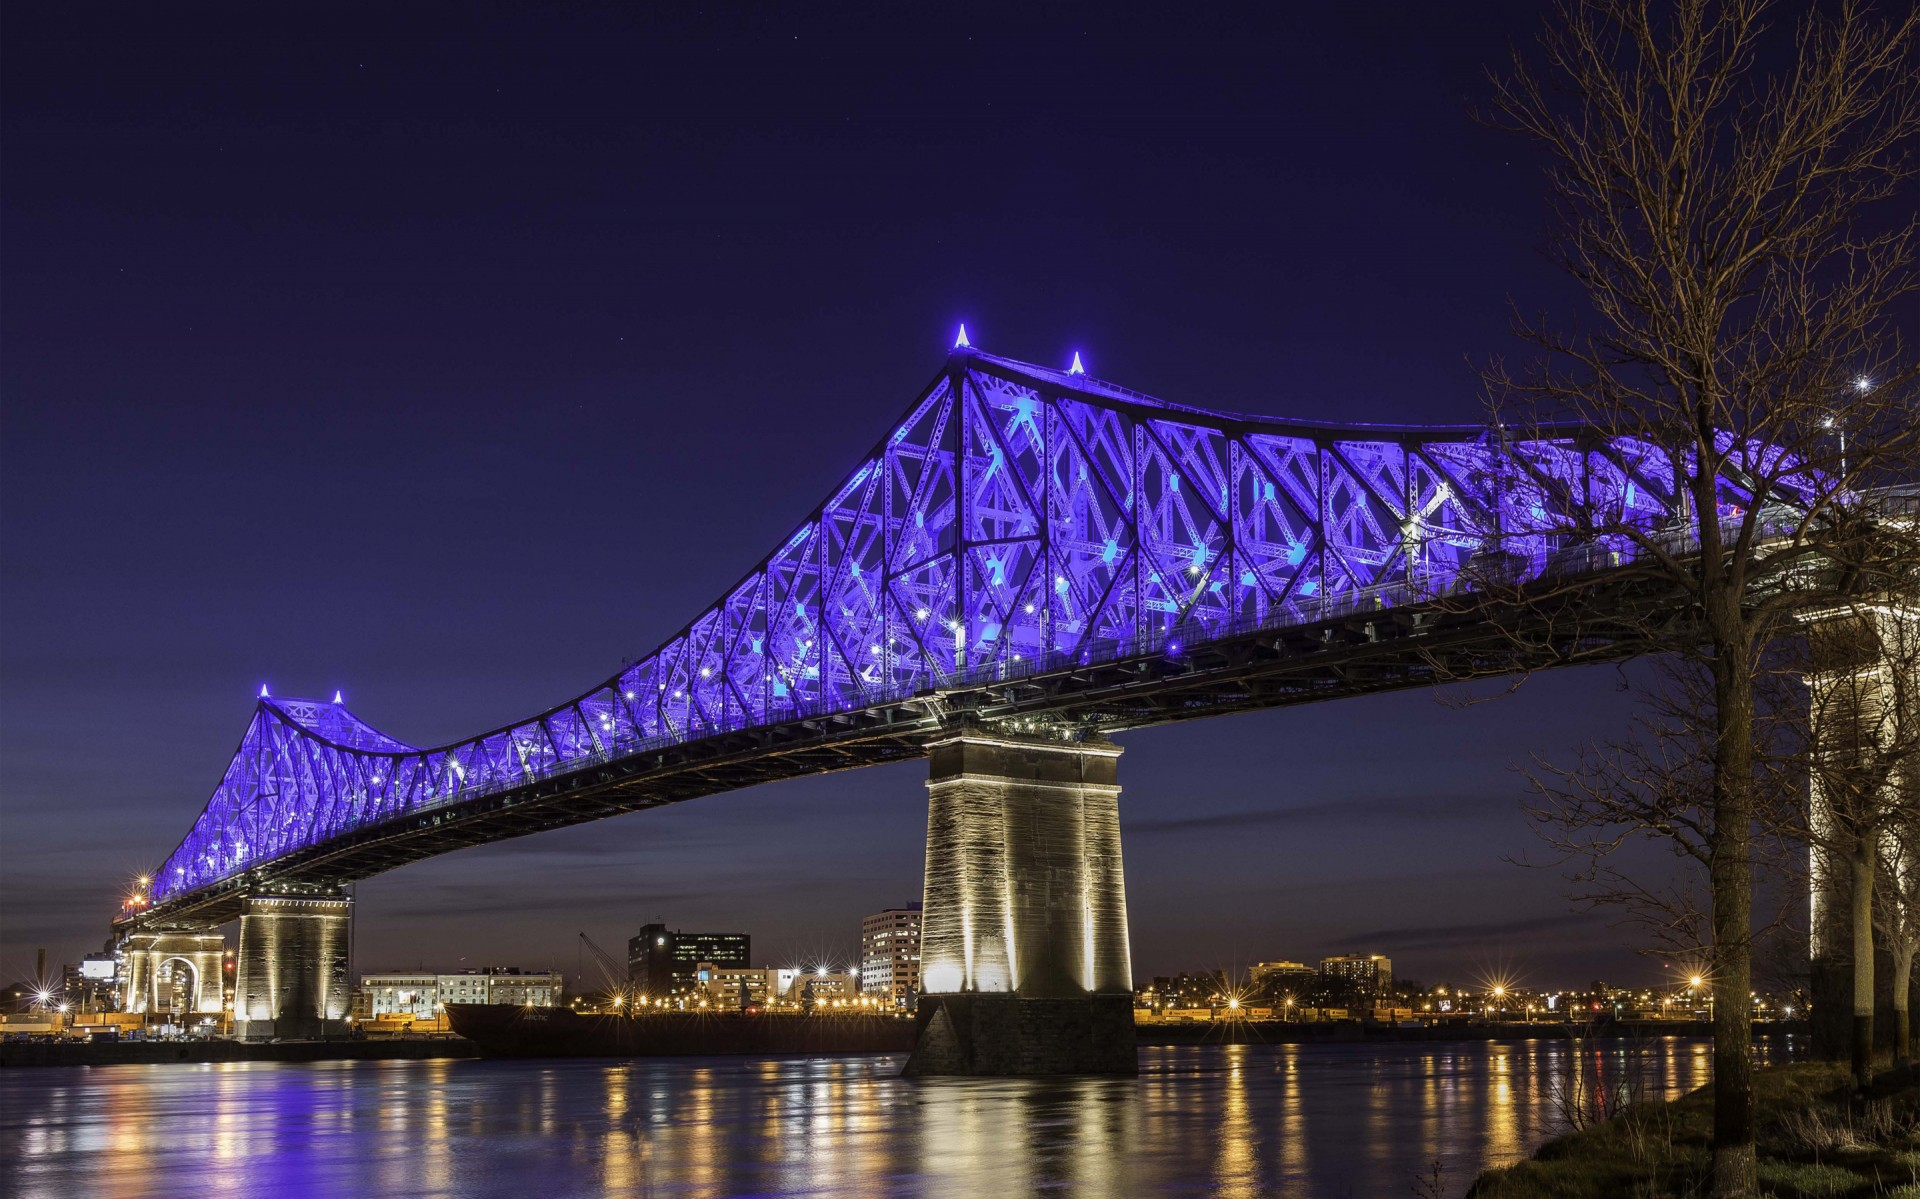 480 appareils durables Lumenbeam XLarge à haut rendement, sont soigneusement dissimulés à même la structure, et baignent celle-ci d'une couleur uniforme. – The Jacques Cartier and Champlain Bridges Incorporated